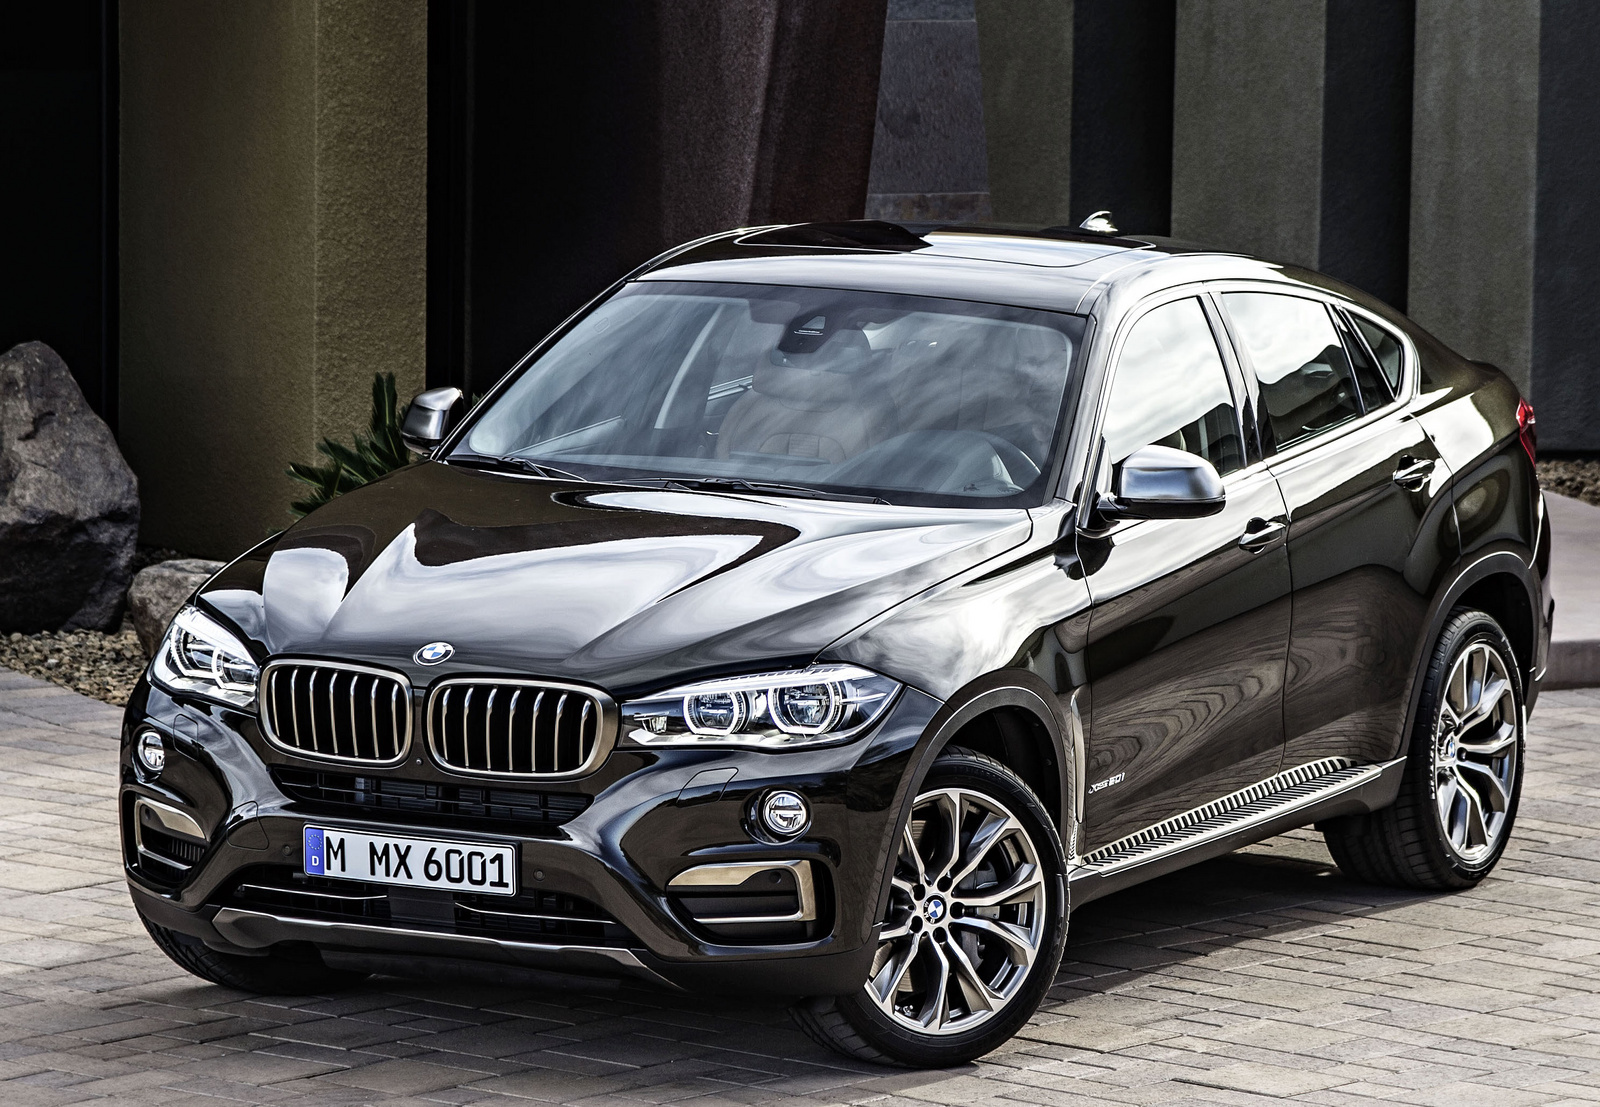 New 2015 2016 Bmw X6 For Sale Cargurus